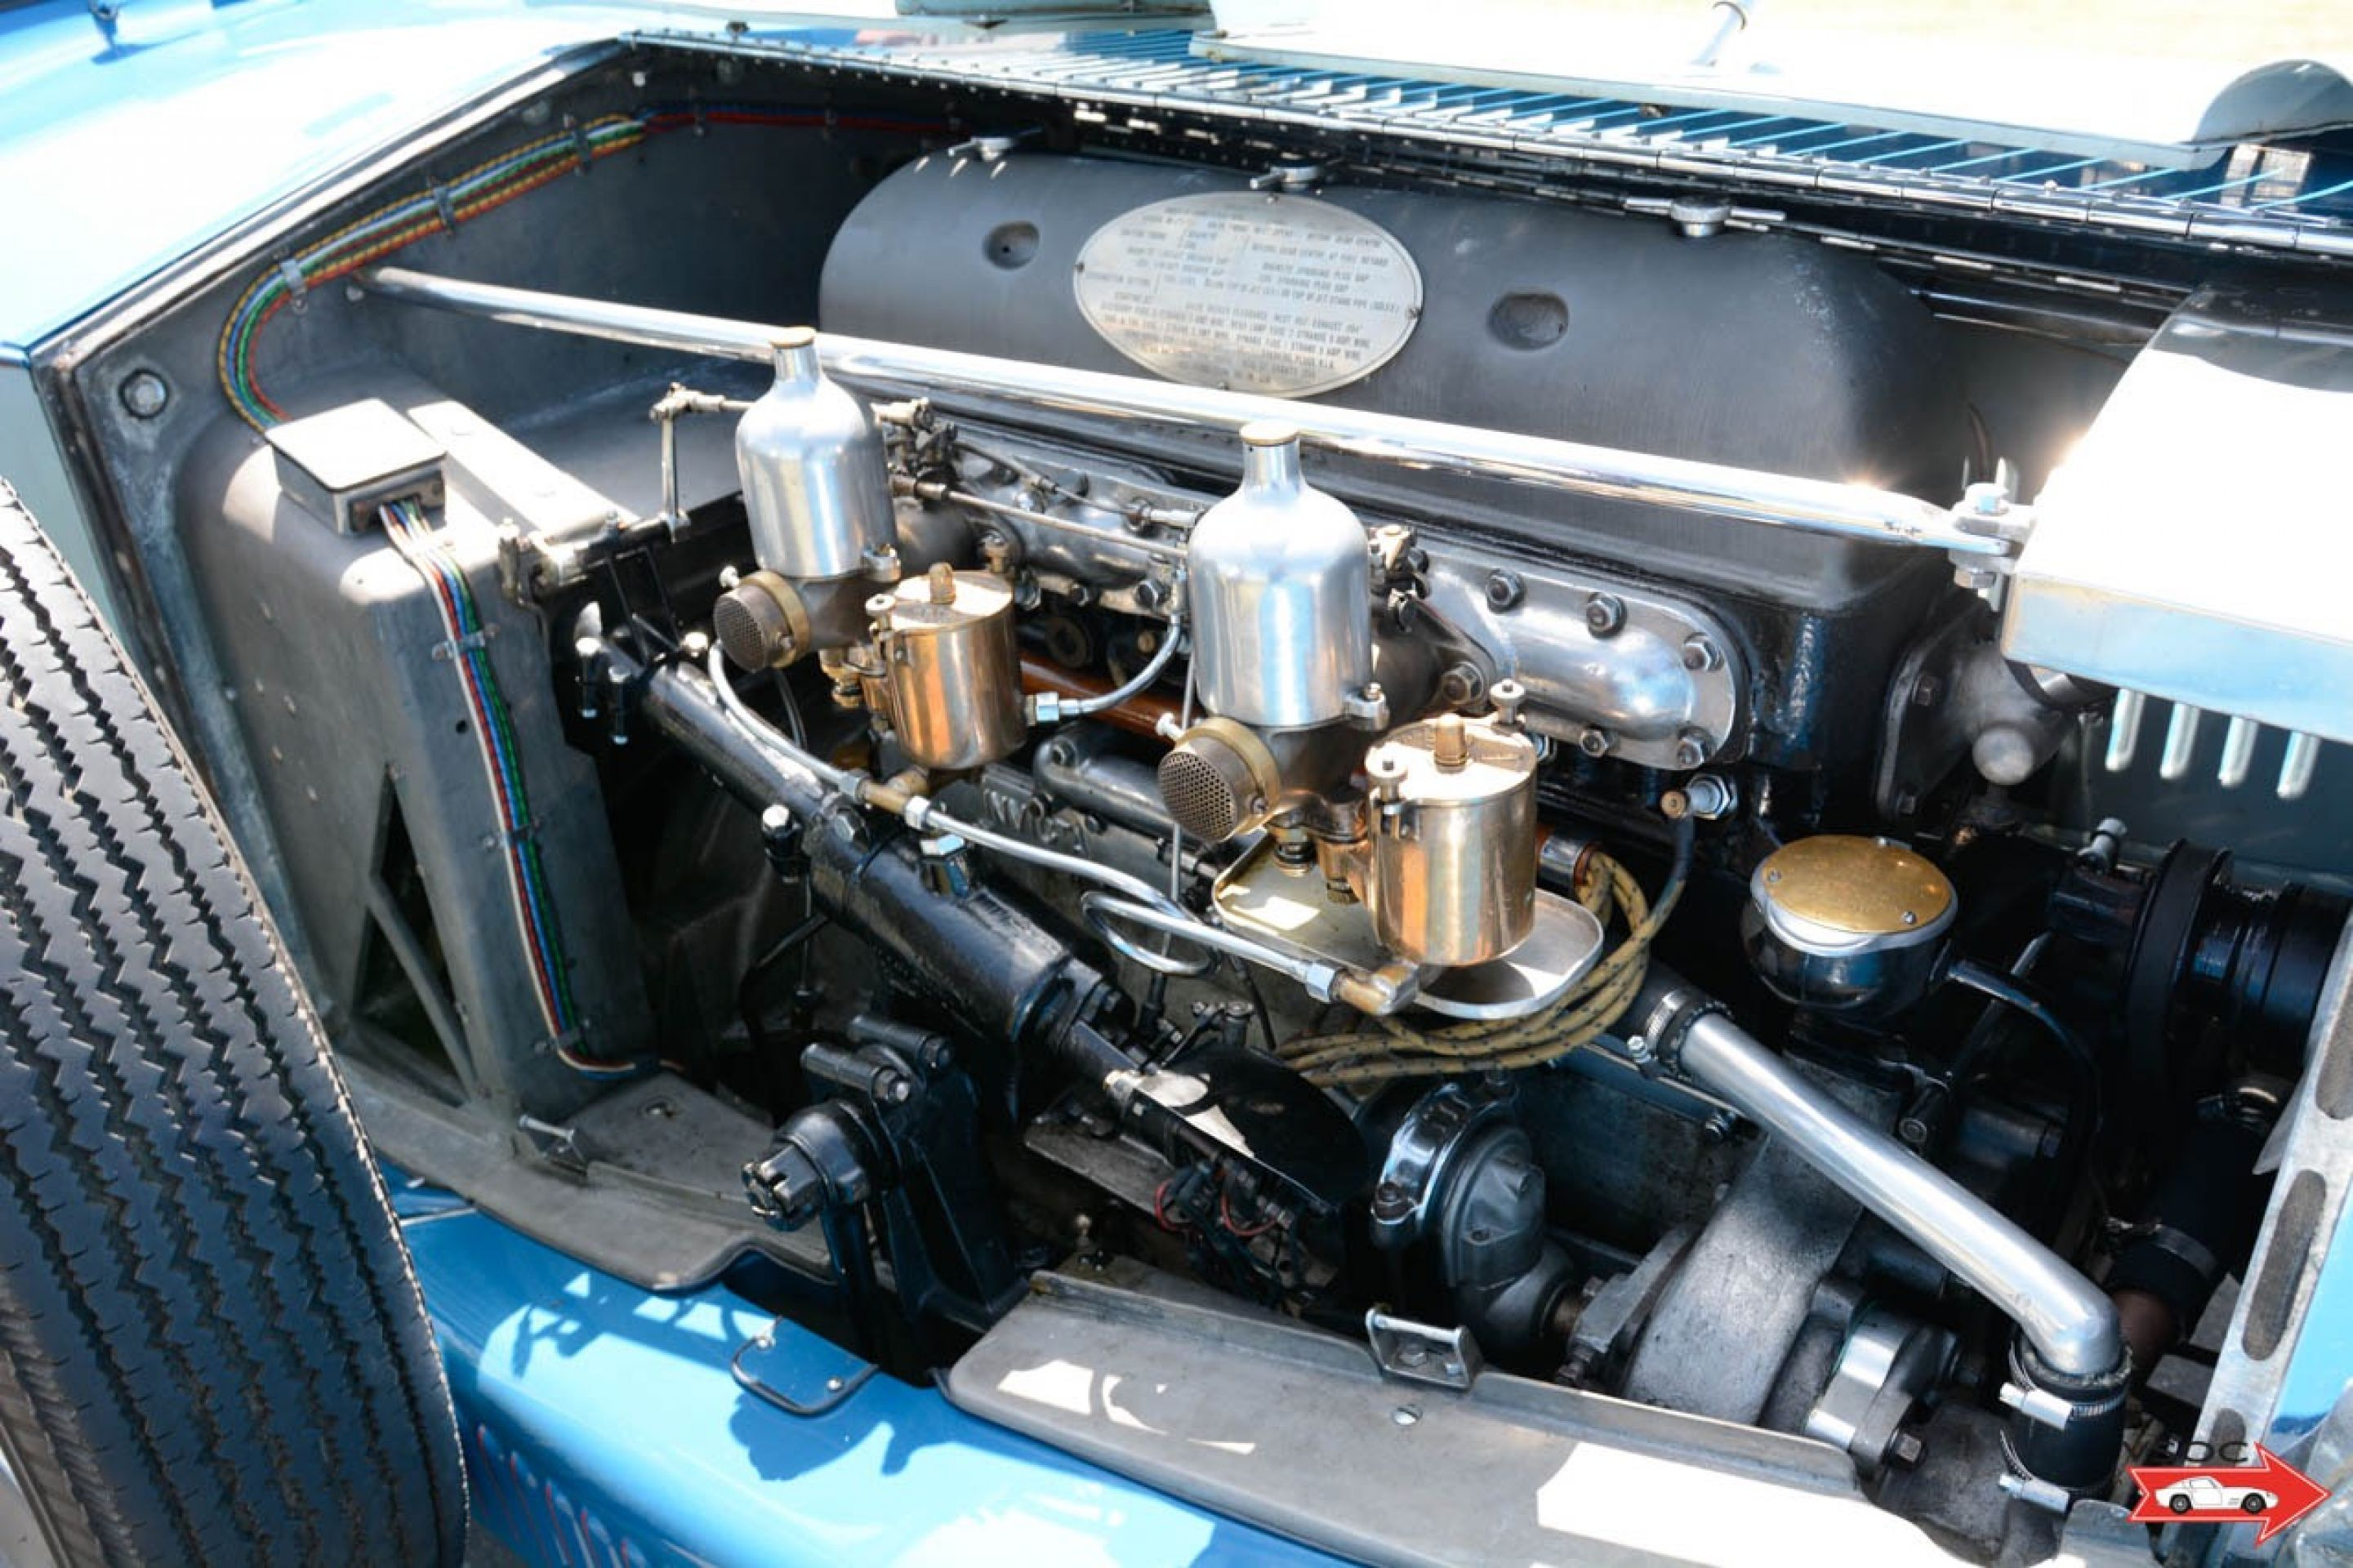 Invicta S-Type Low Chassis Drophead Coupé, great continuous history